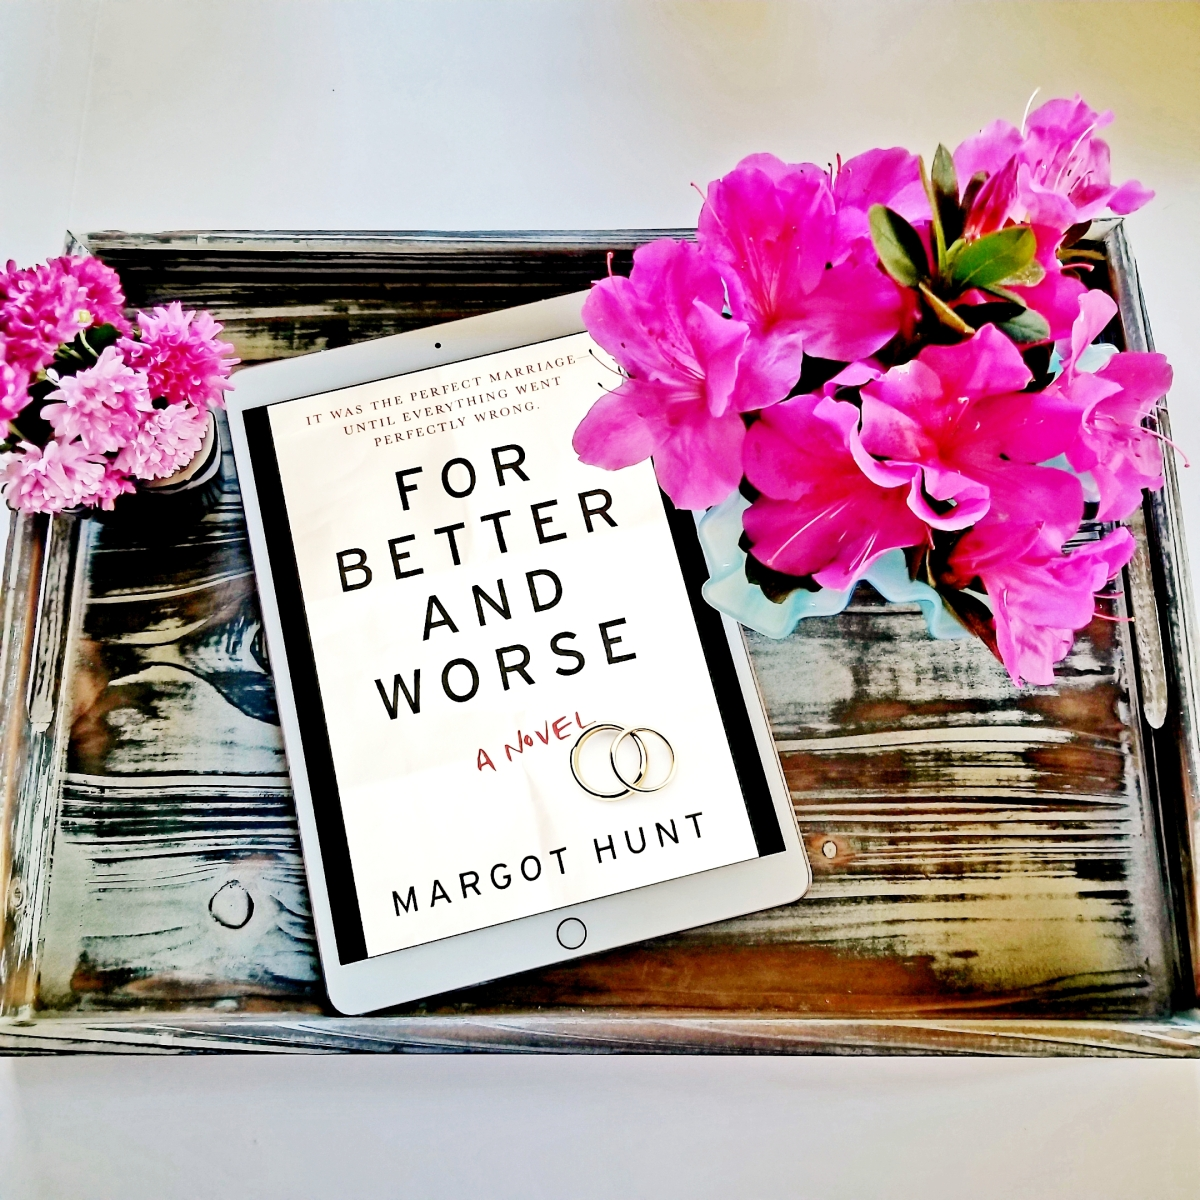 For Better and Worse by Margot Hunt #bookreview #tarheelreader #thrforbetter @huntauthor @harlequinbooks #harlequinmira #forbetterandworse #bookbestiesforbetterandworse